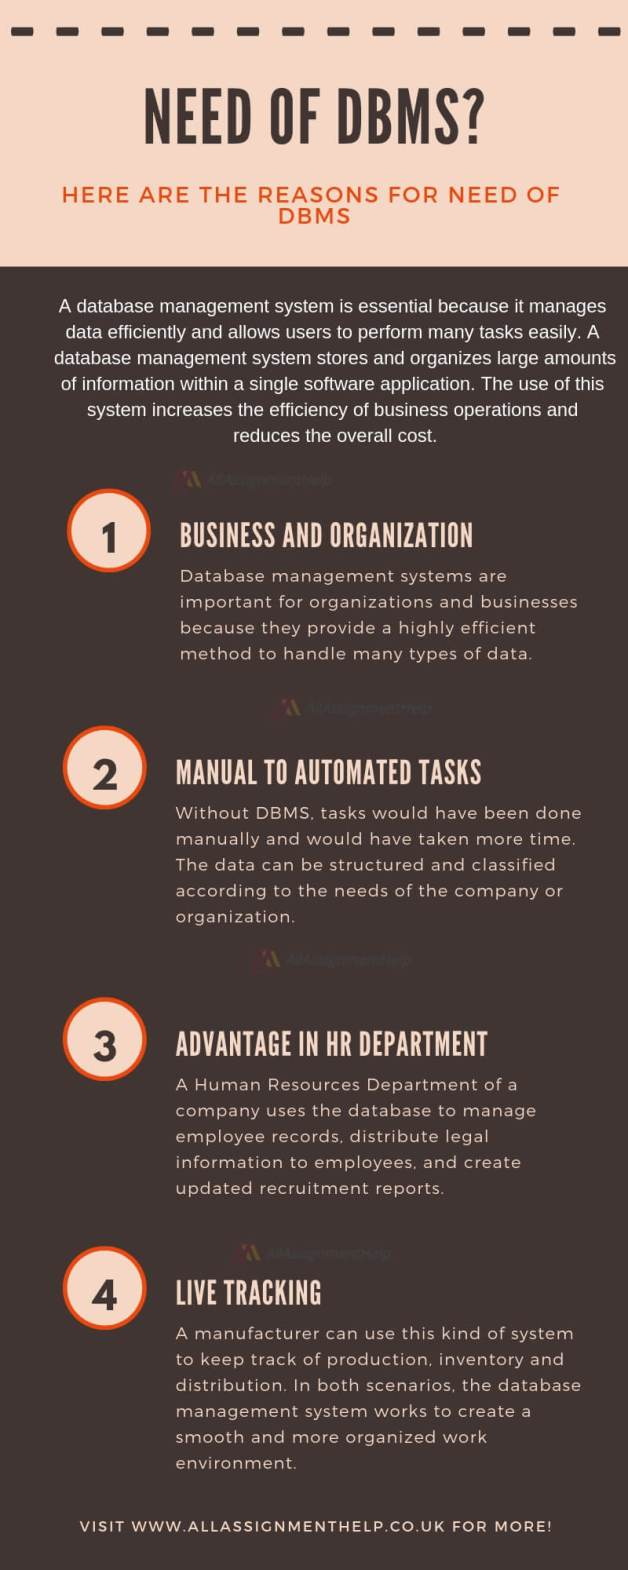 WHAT IS THE NEED OF DATABASE MANAGEMENT SYSTEM